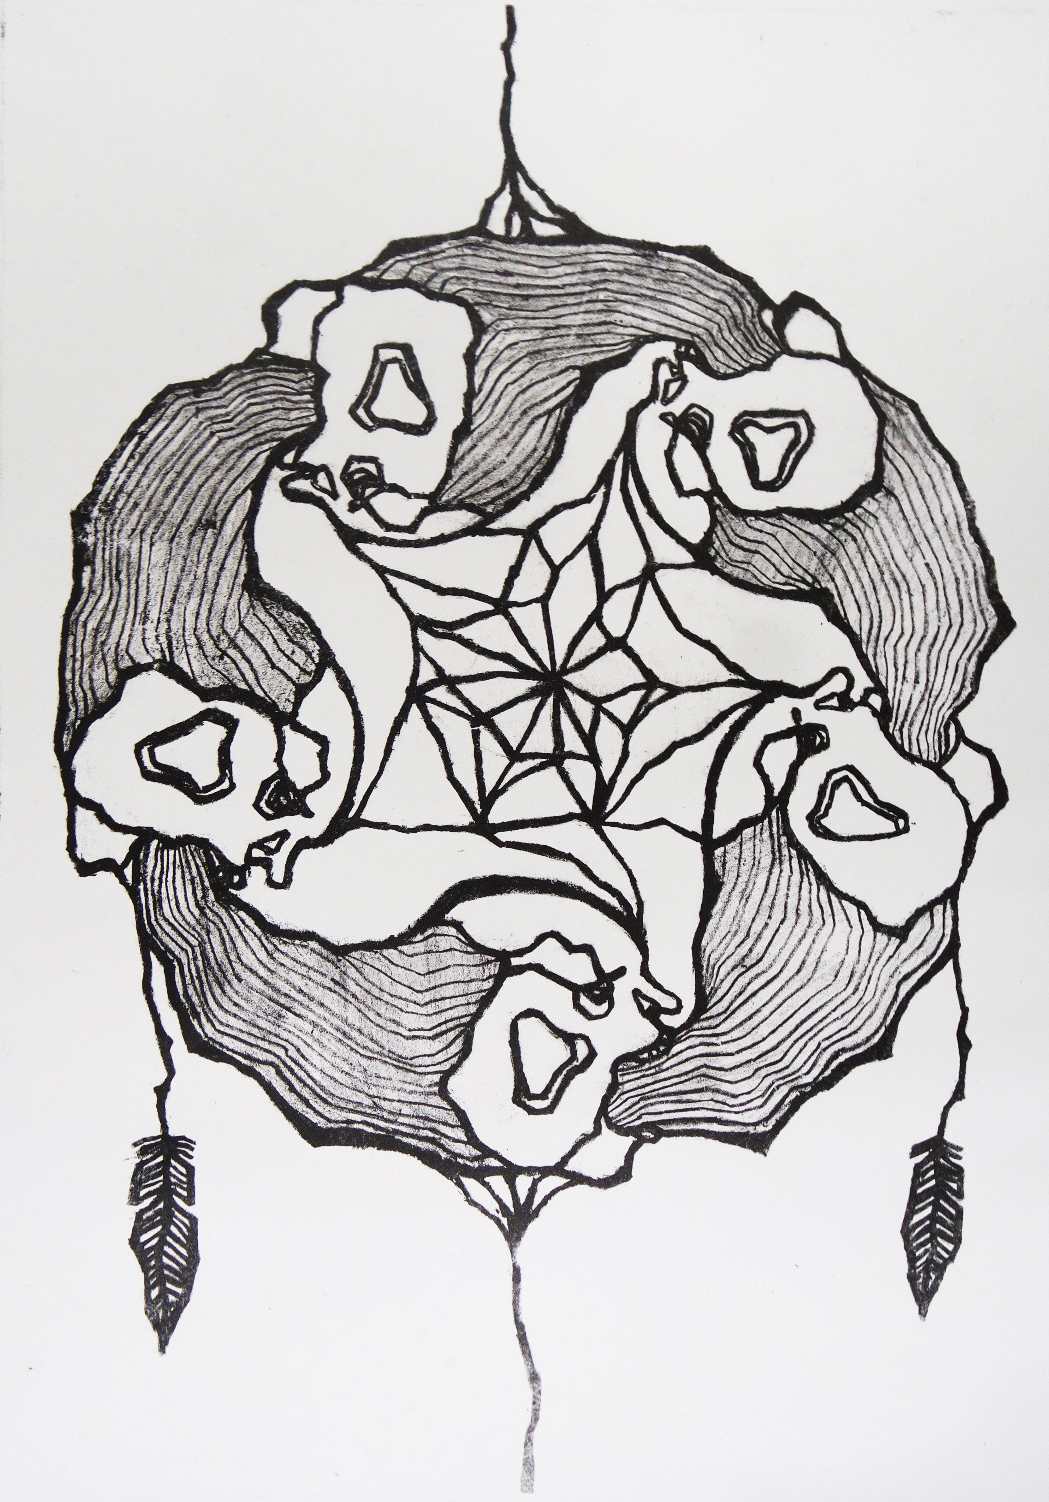 Lithography: Dream catcher made out of nightmares